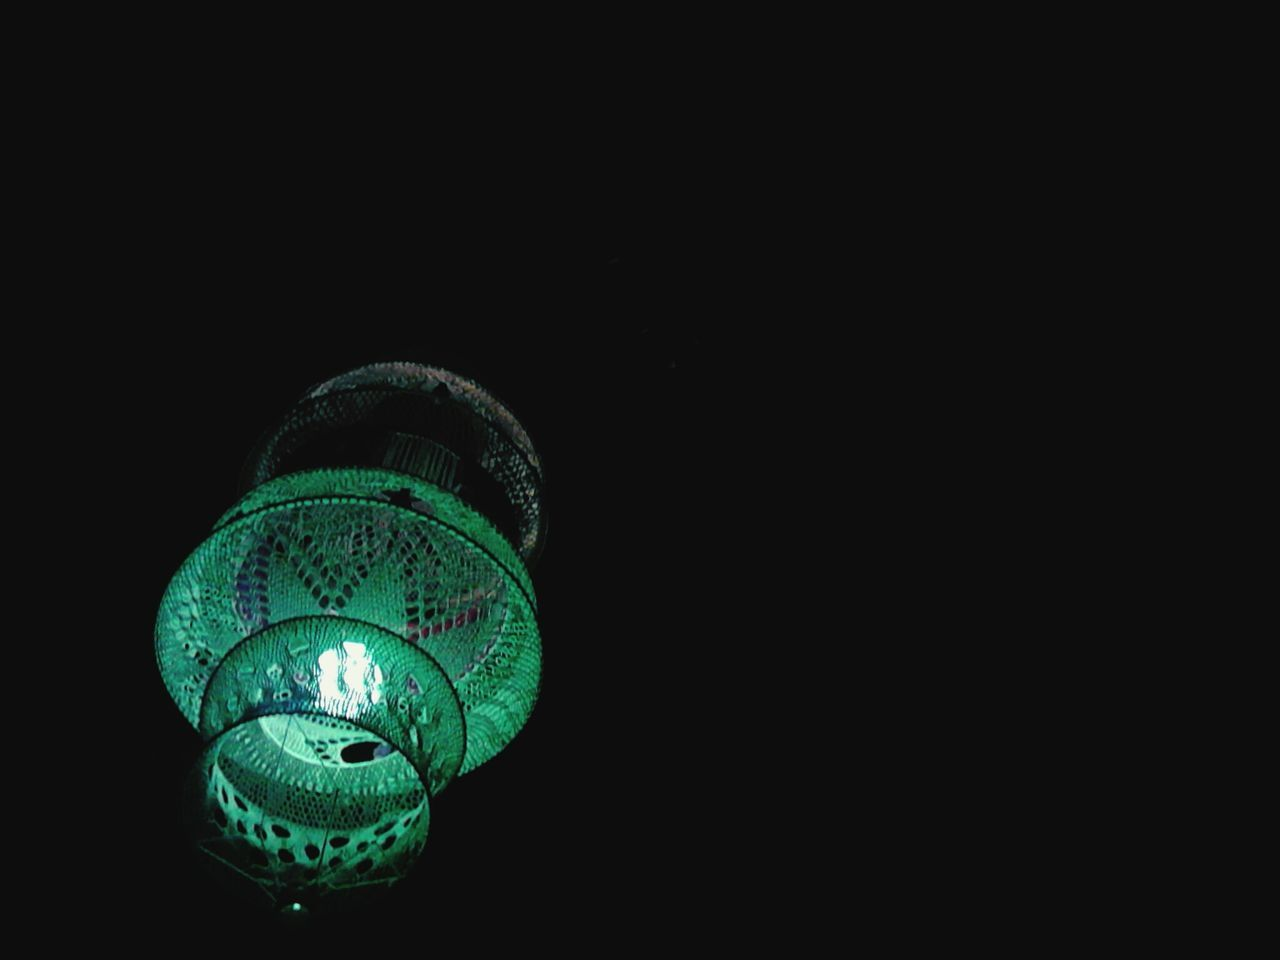 illuminated, lighting equipment, black background, copy space, no people, electricity, close-up, low angle view, studio shot, light bulb, night, indoors, lantern, technology